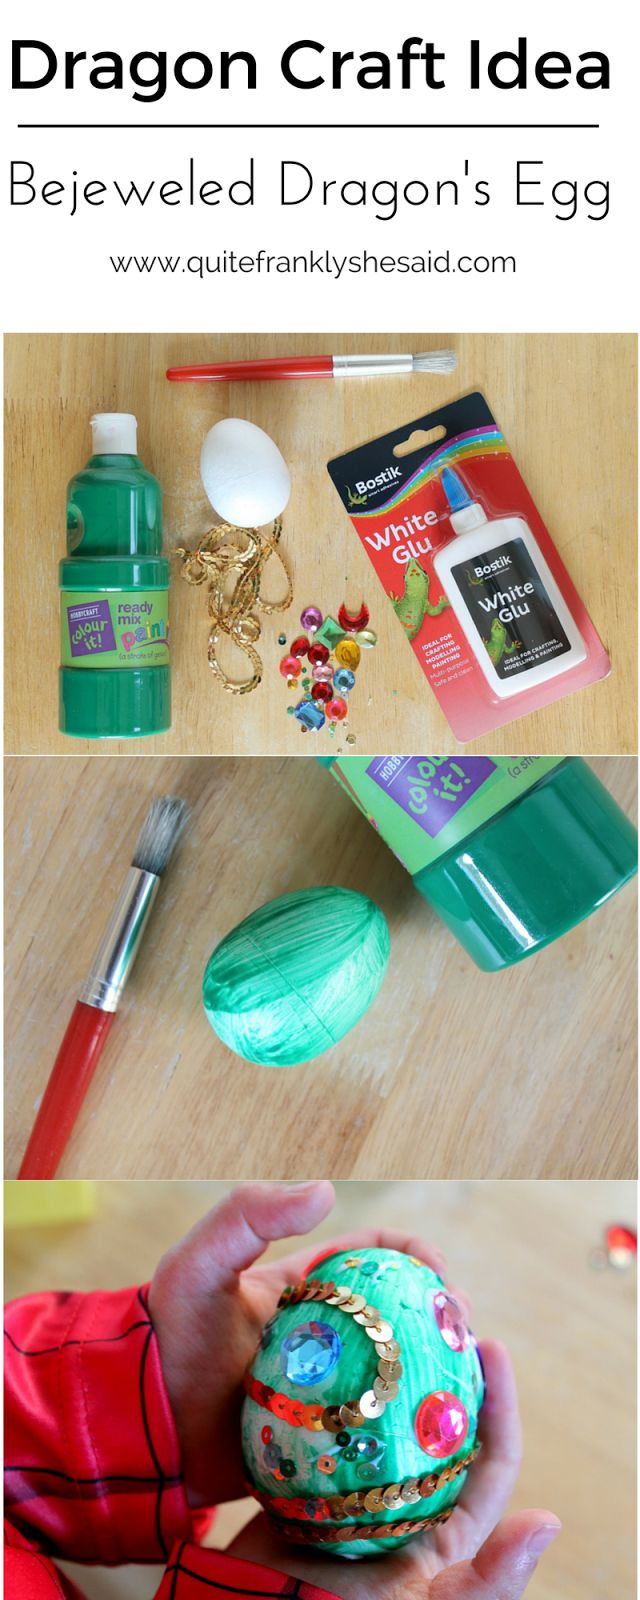 Dragon Craft Idea: Bejeweled Dragon's Egg tutorial for toddlers, preschoolers